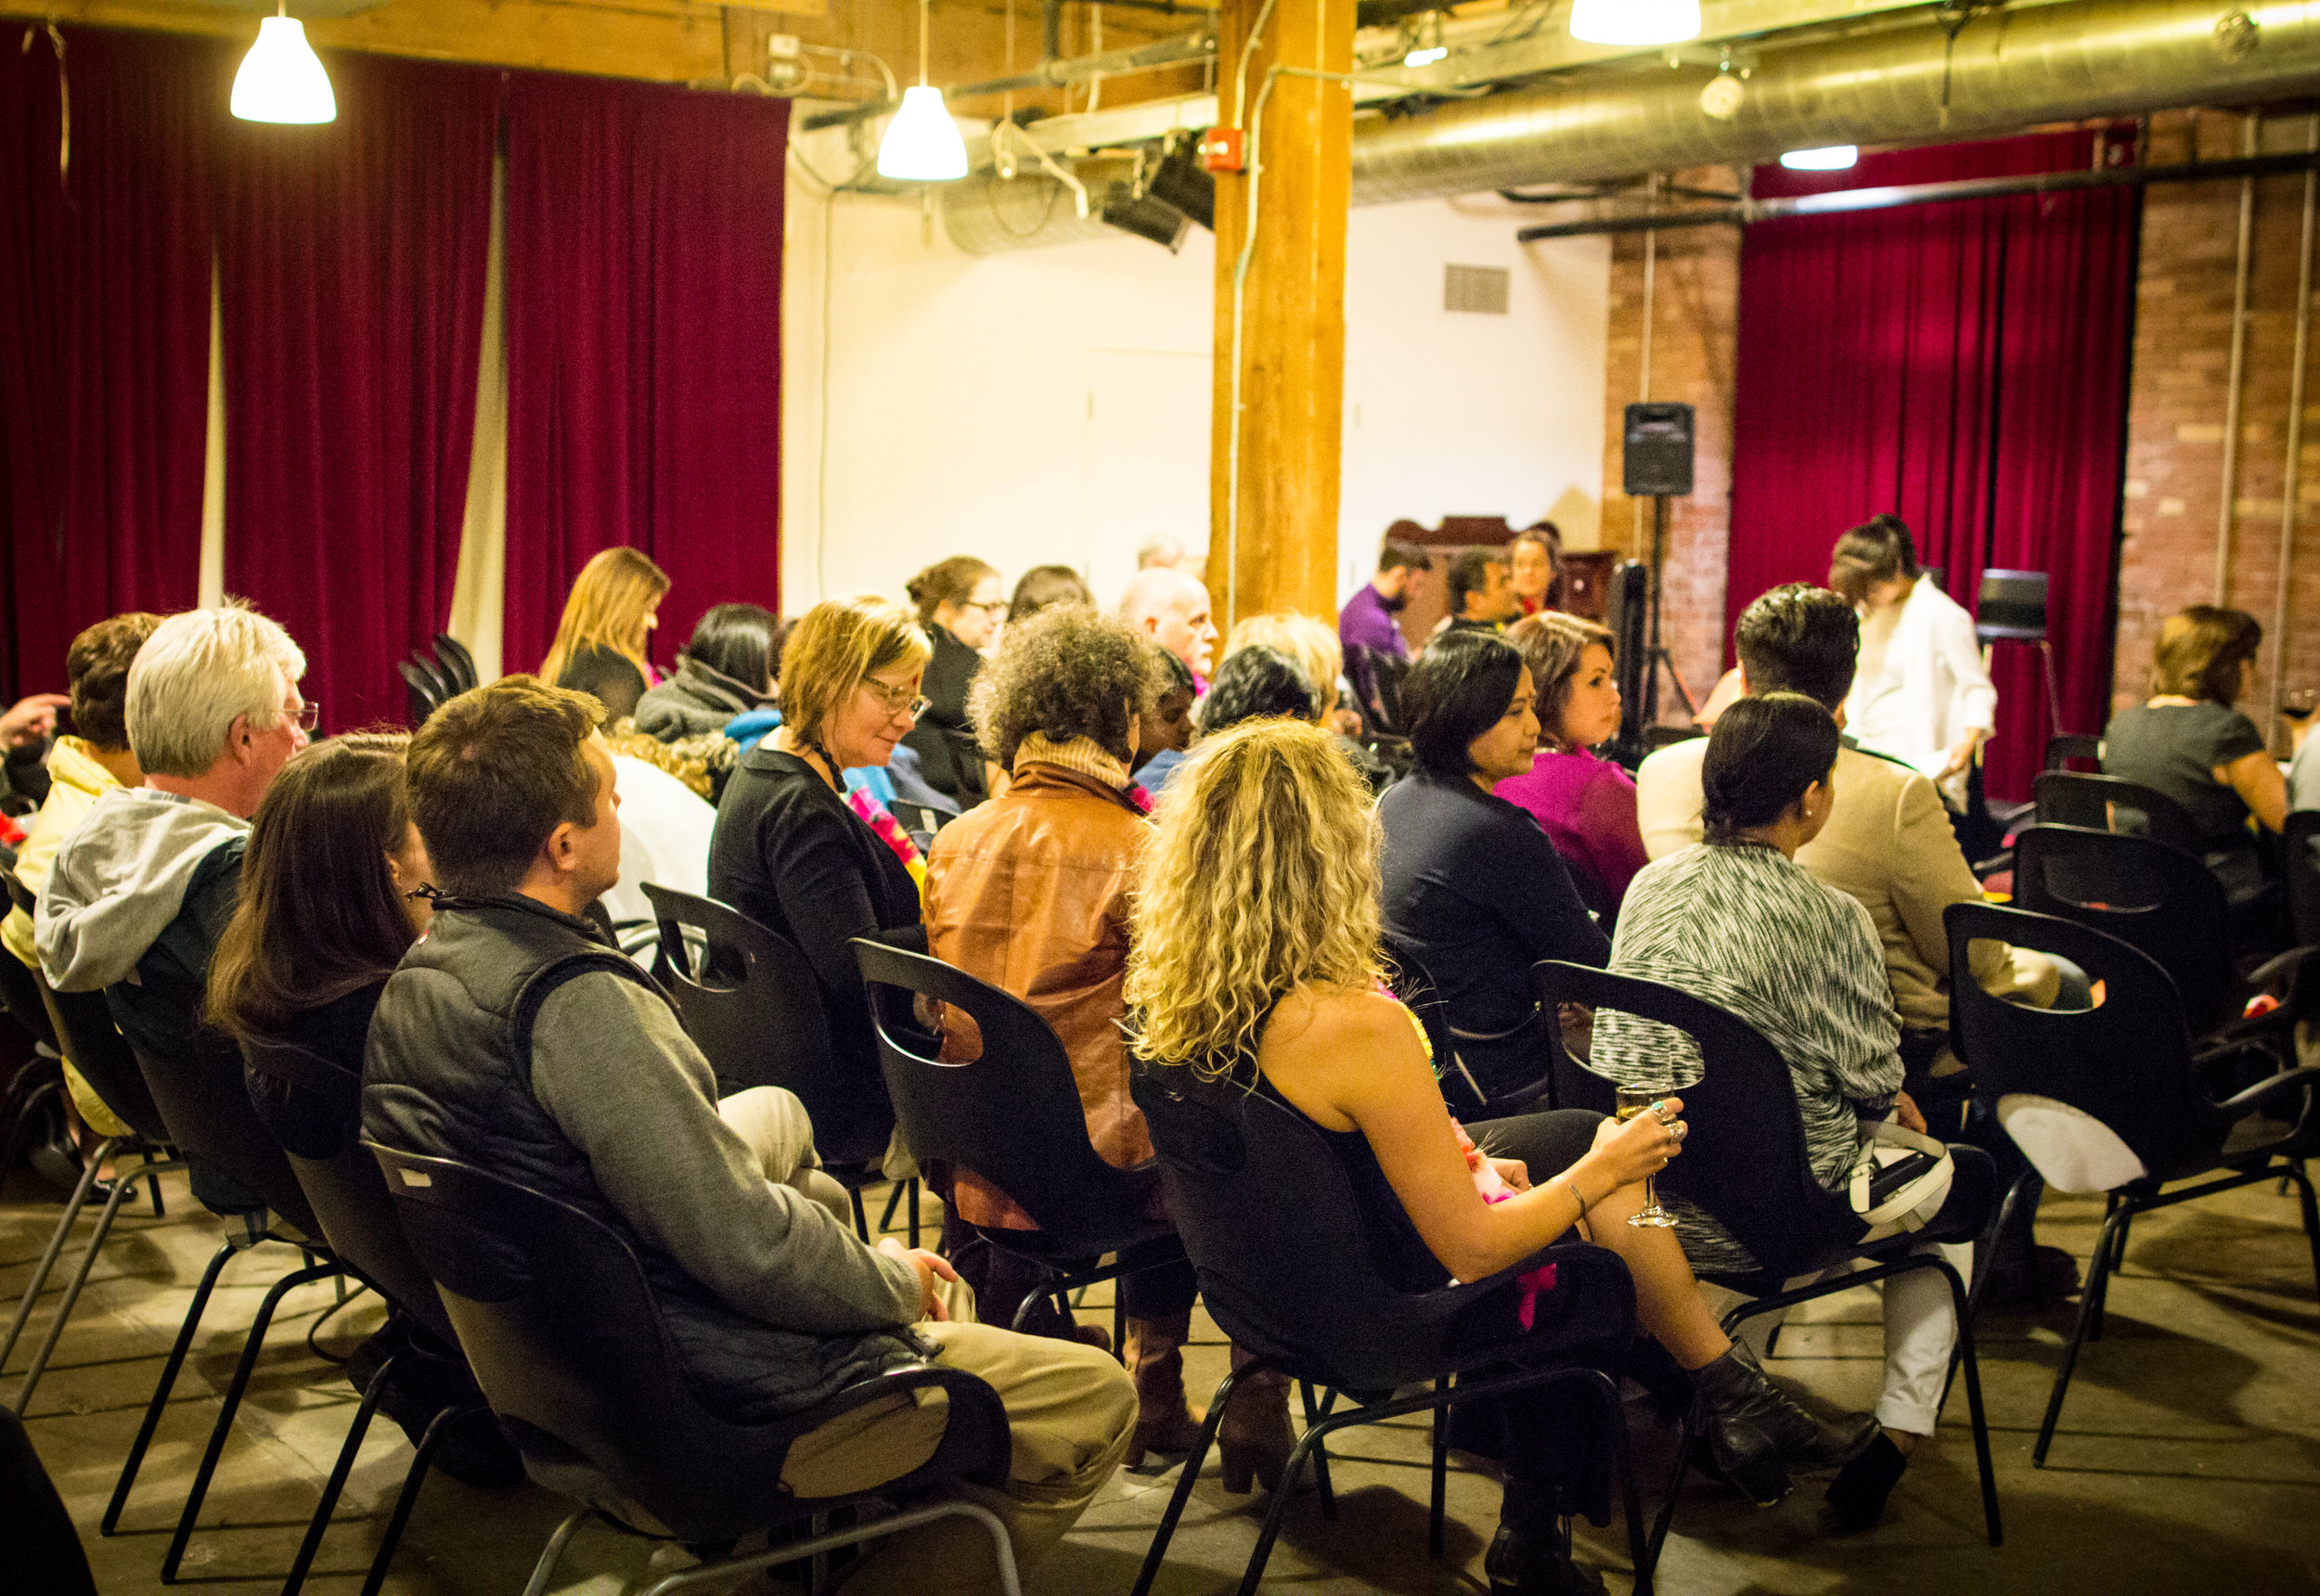 Hosted at the Centre for Social Innovation in Toronto, the event space was packed with guests eagerly awaiting the episode screening.